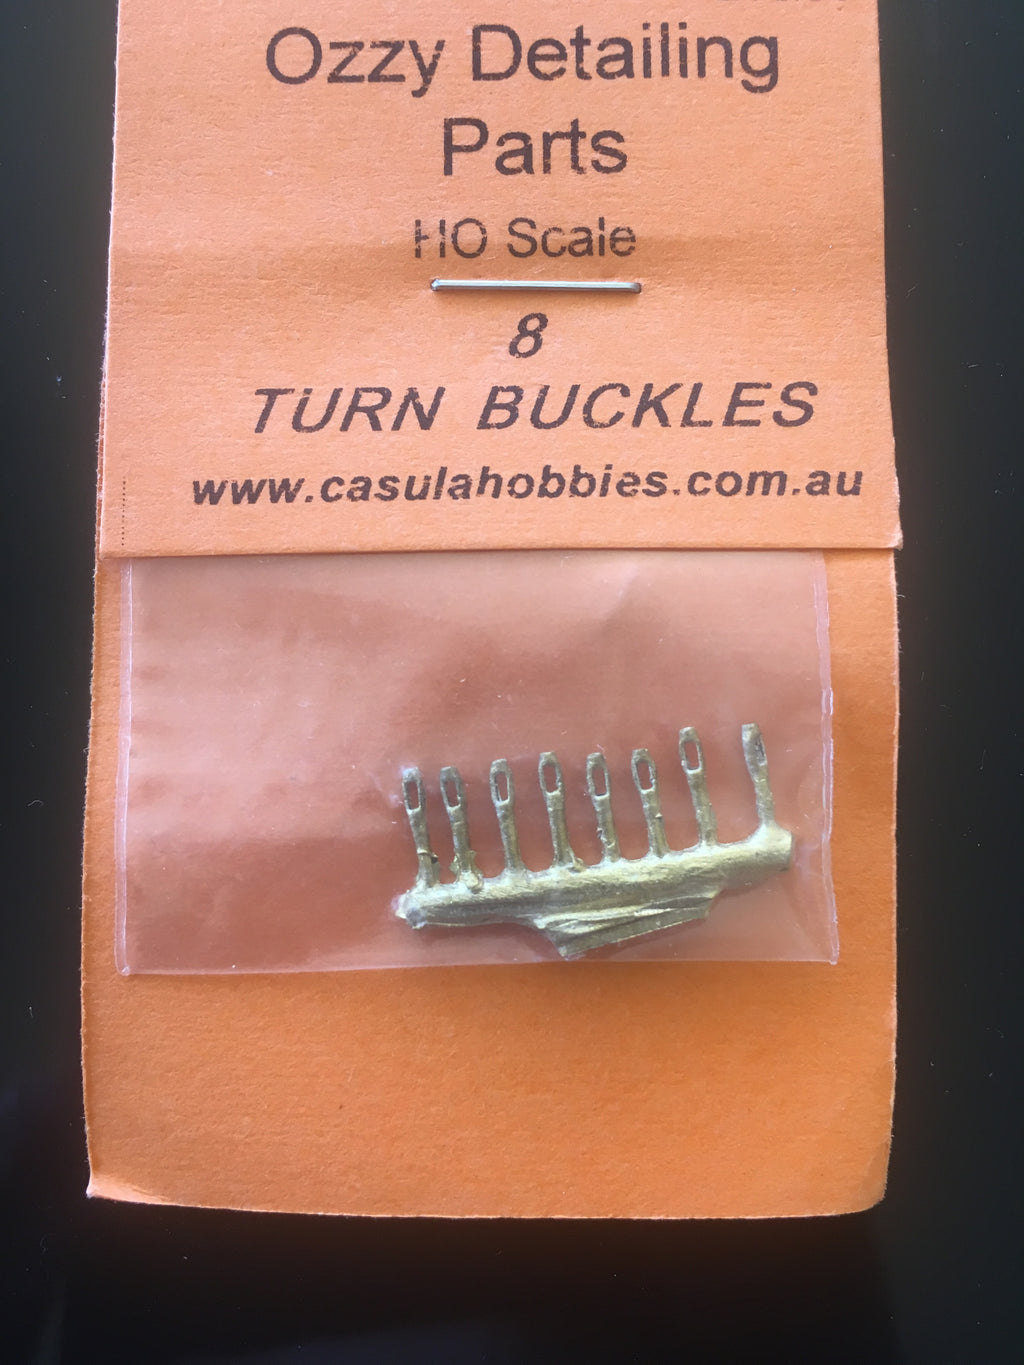 34: TURN BUCKLES #34 (8) HO Ozzy Brass: #34